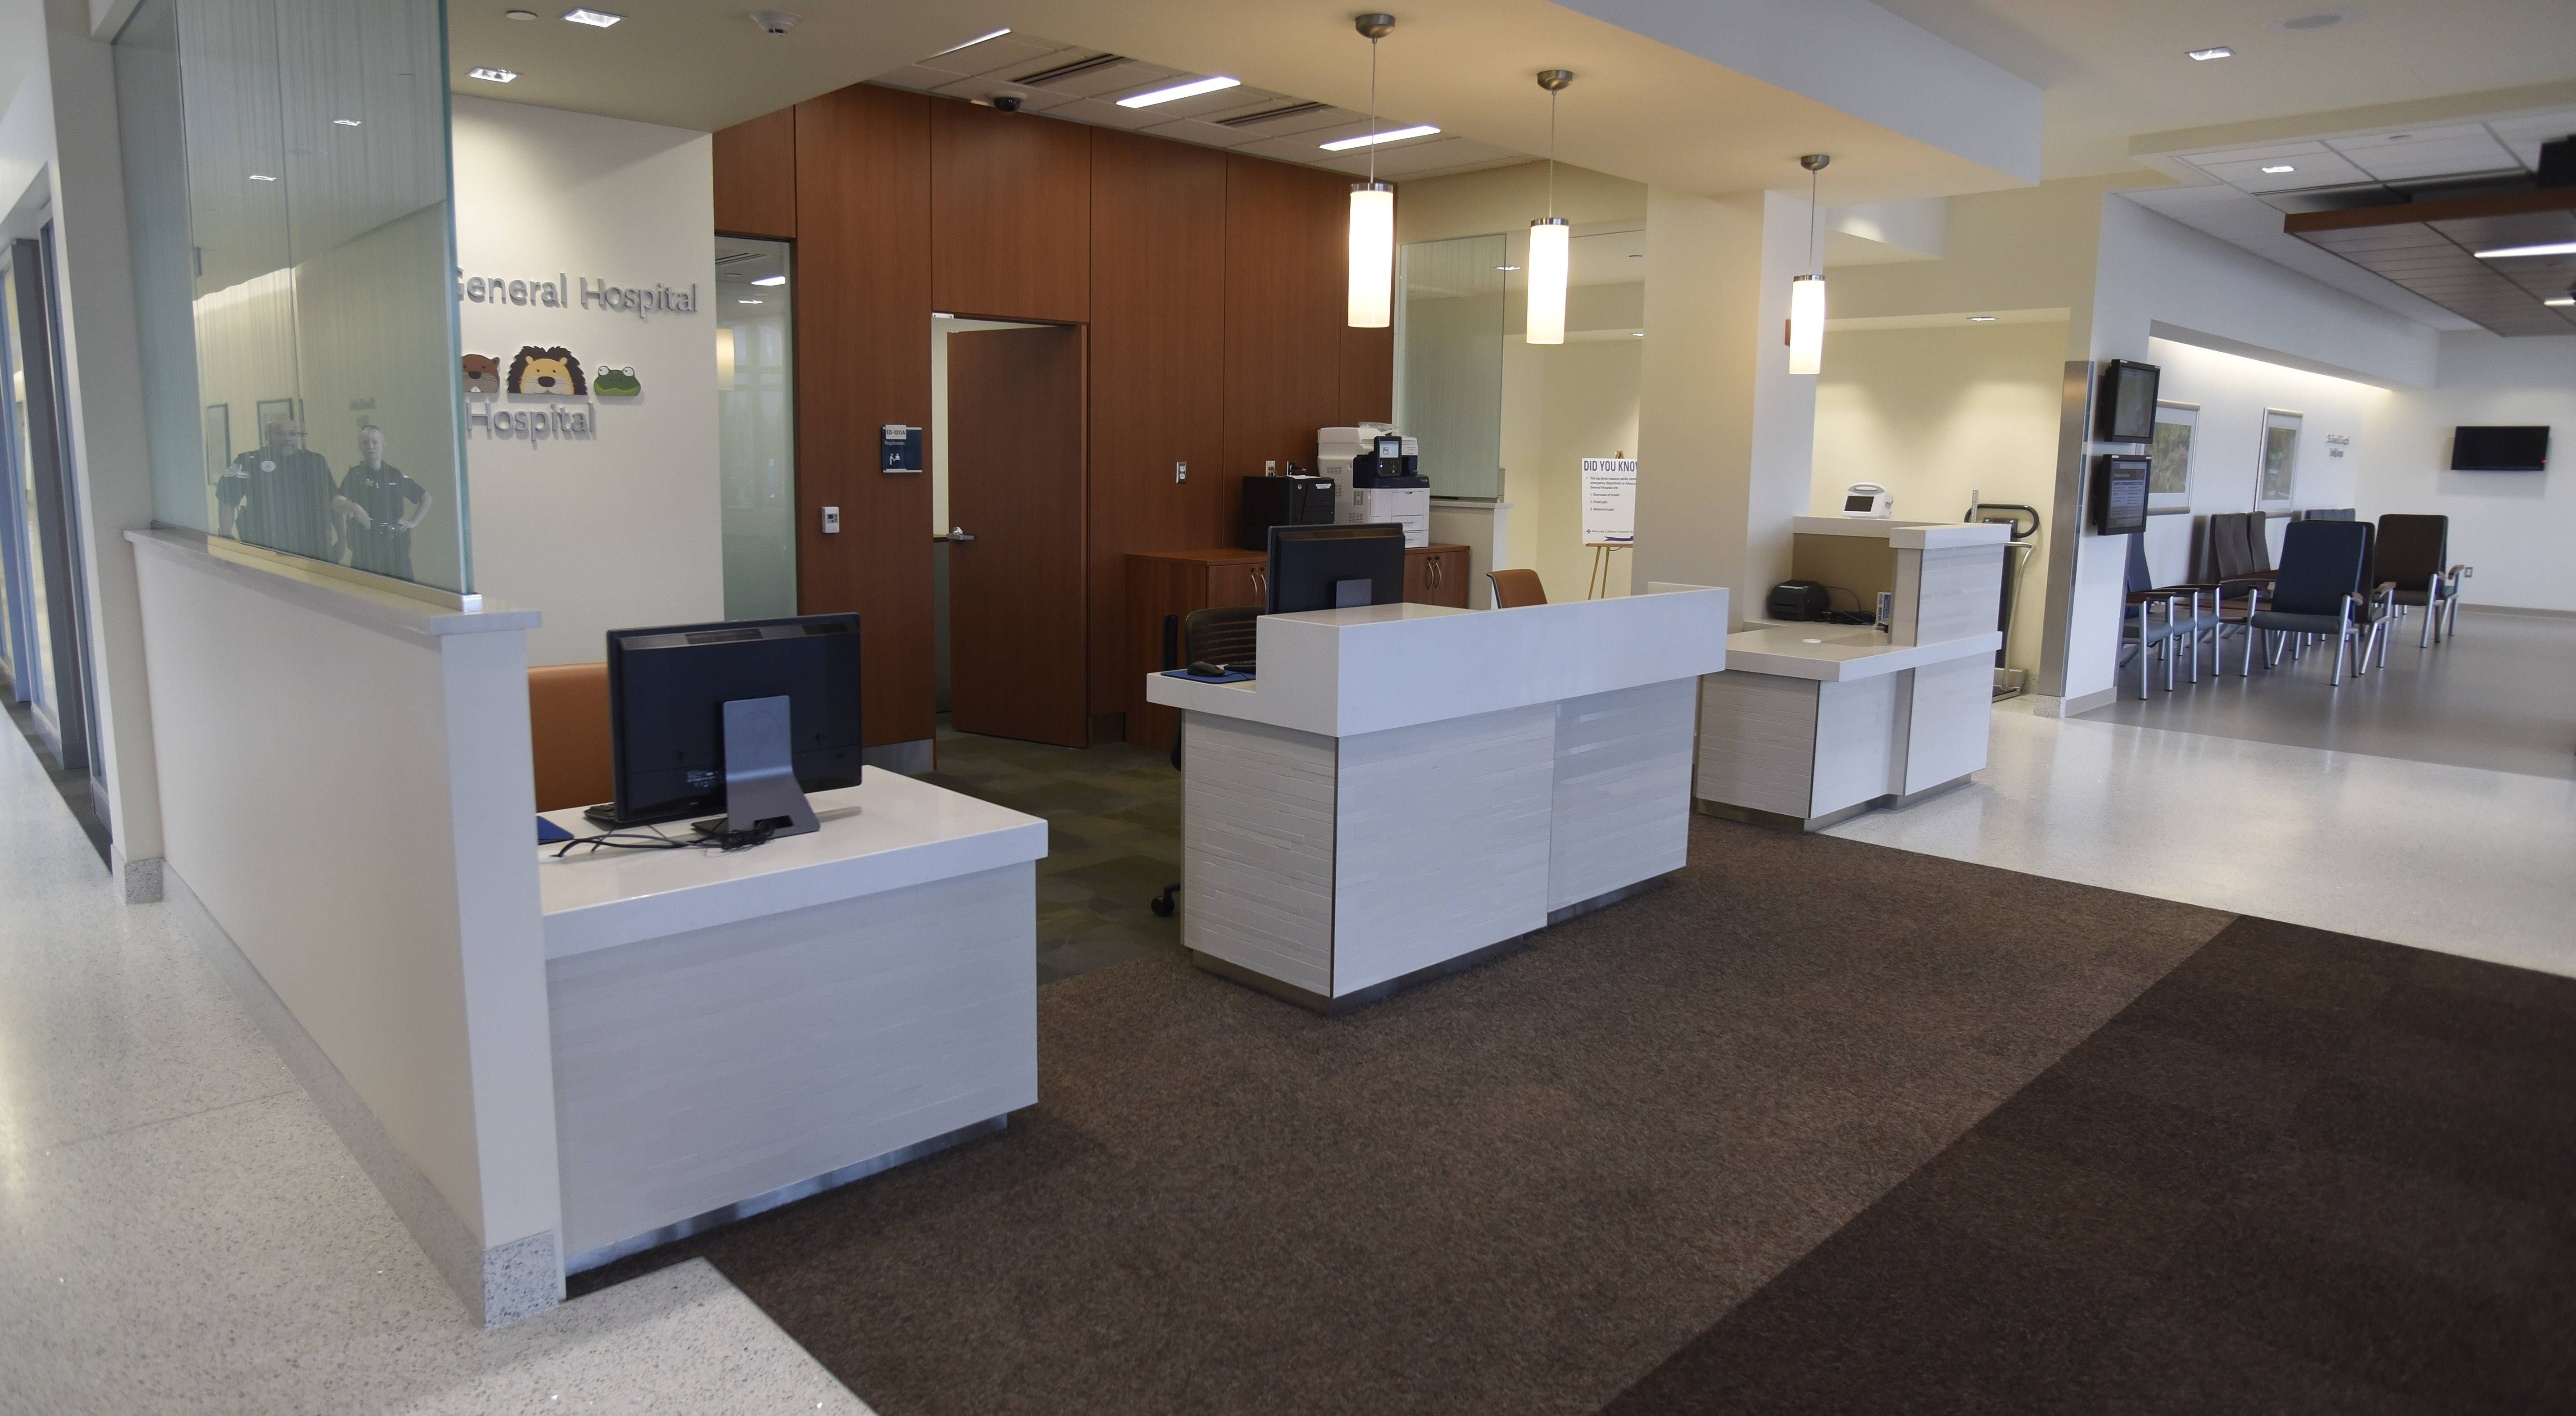 13 new emergency rooms at Lutheran General | Trauma center and Lutheran